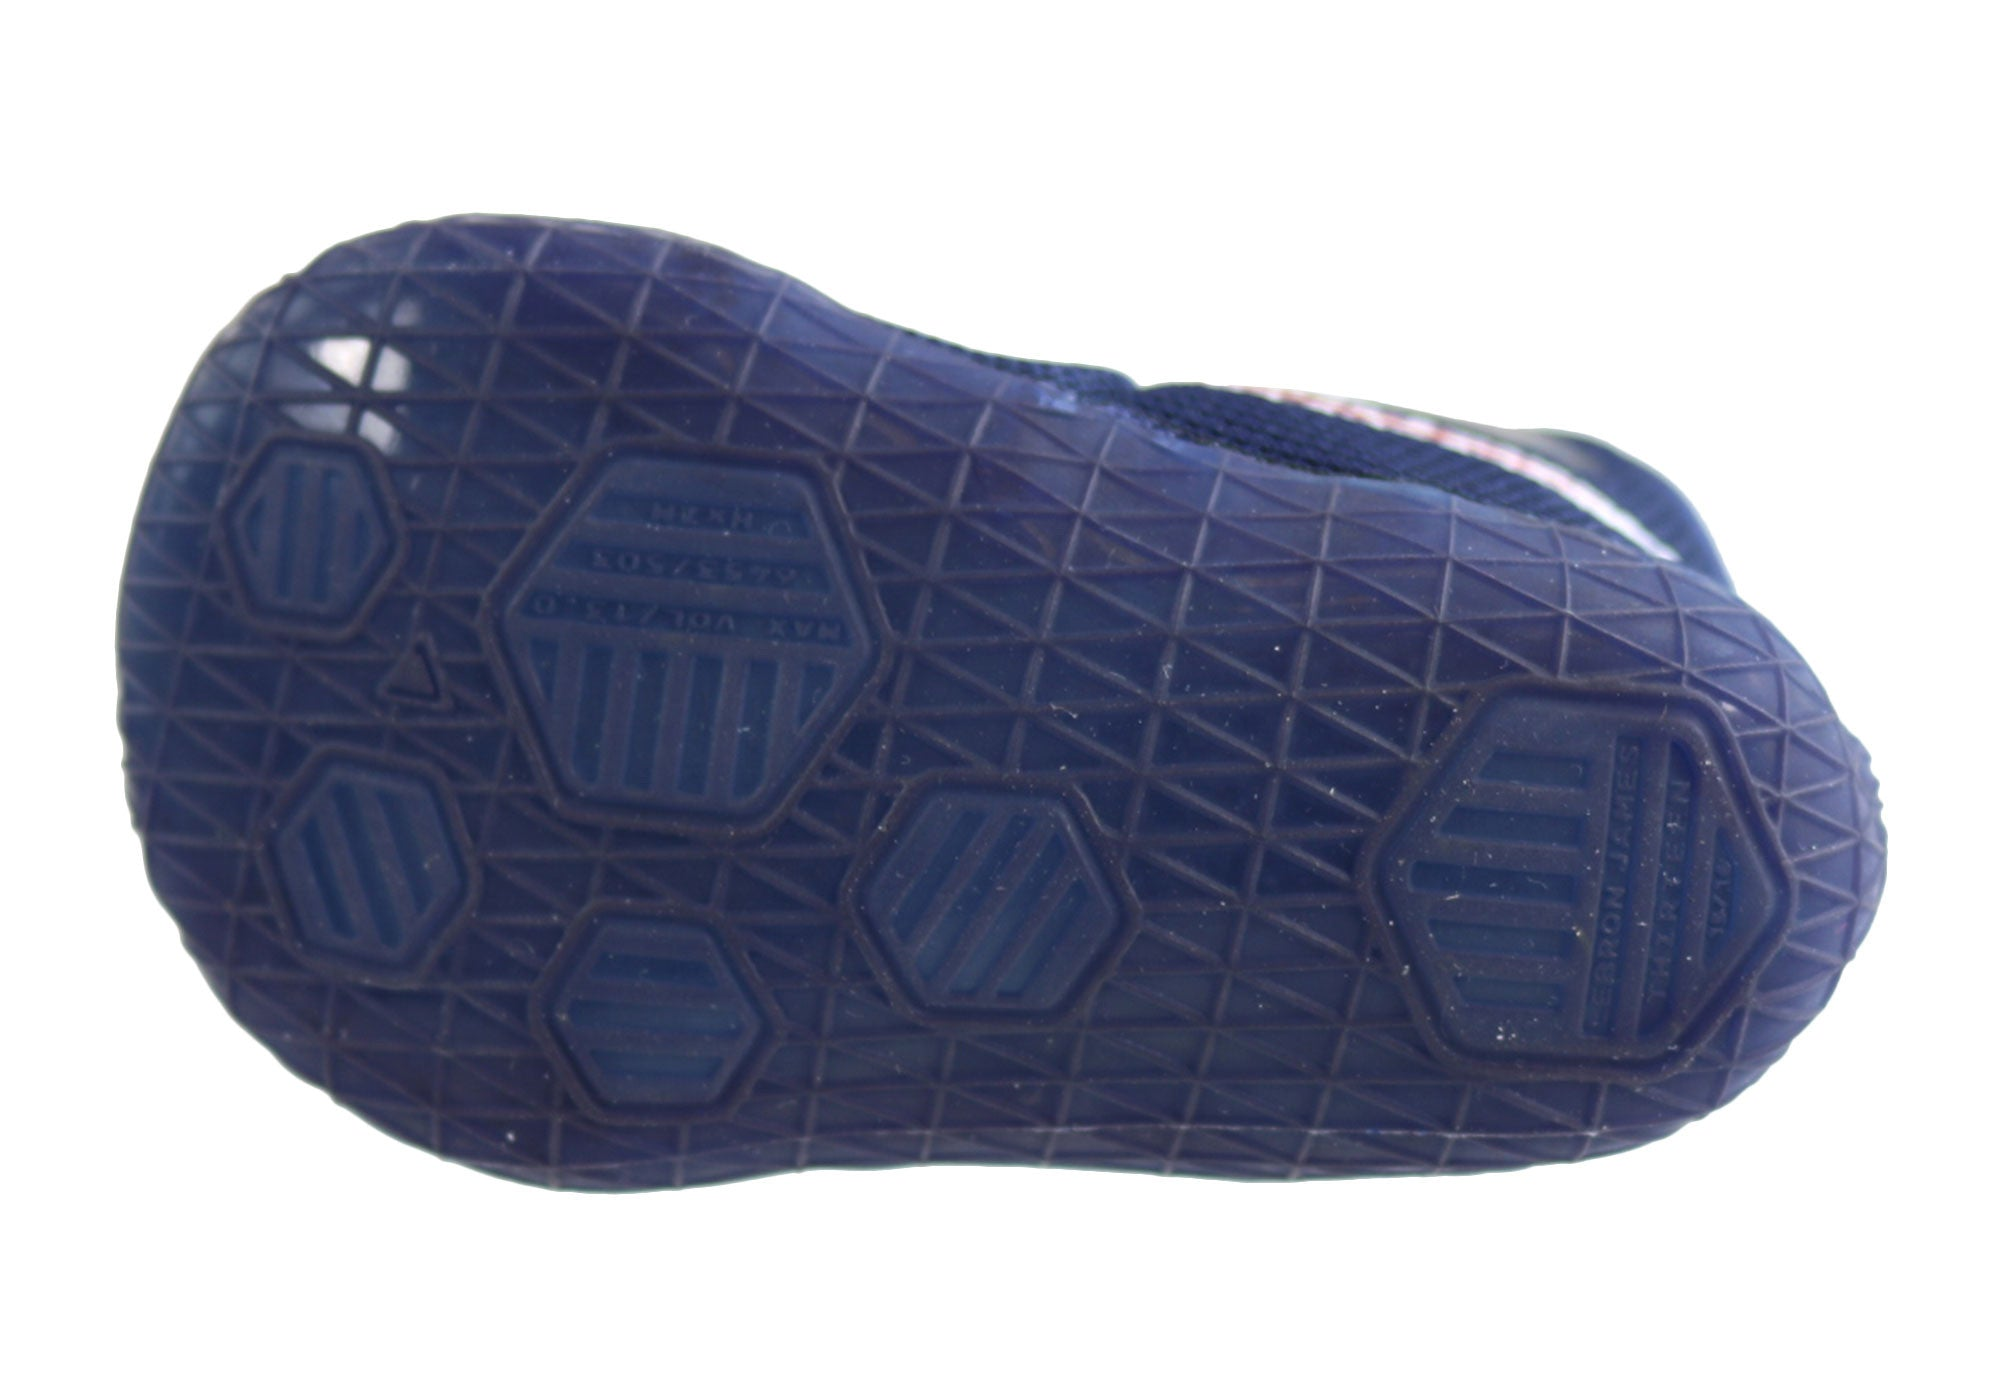 new style a72c1 79879 Nike Lebron XIII Toddler Baby Boys Comfortable Soft Sole Shoes